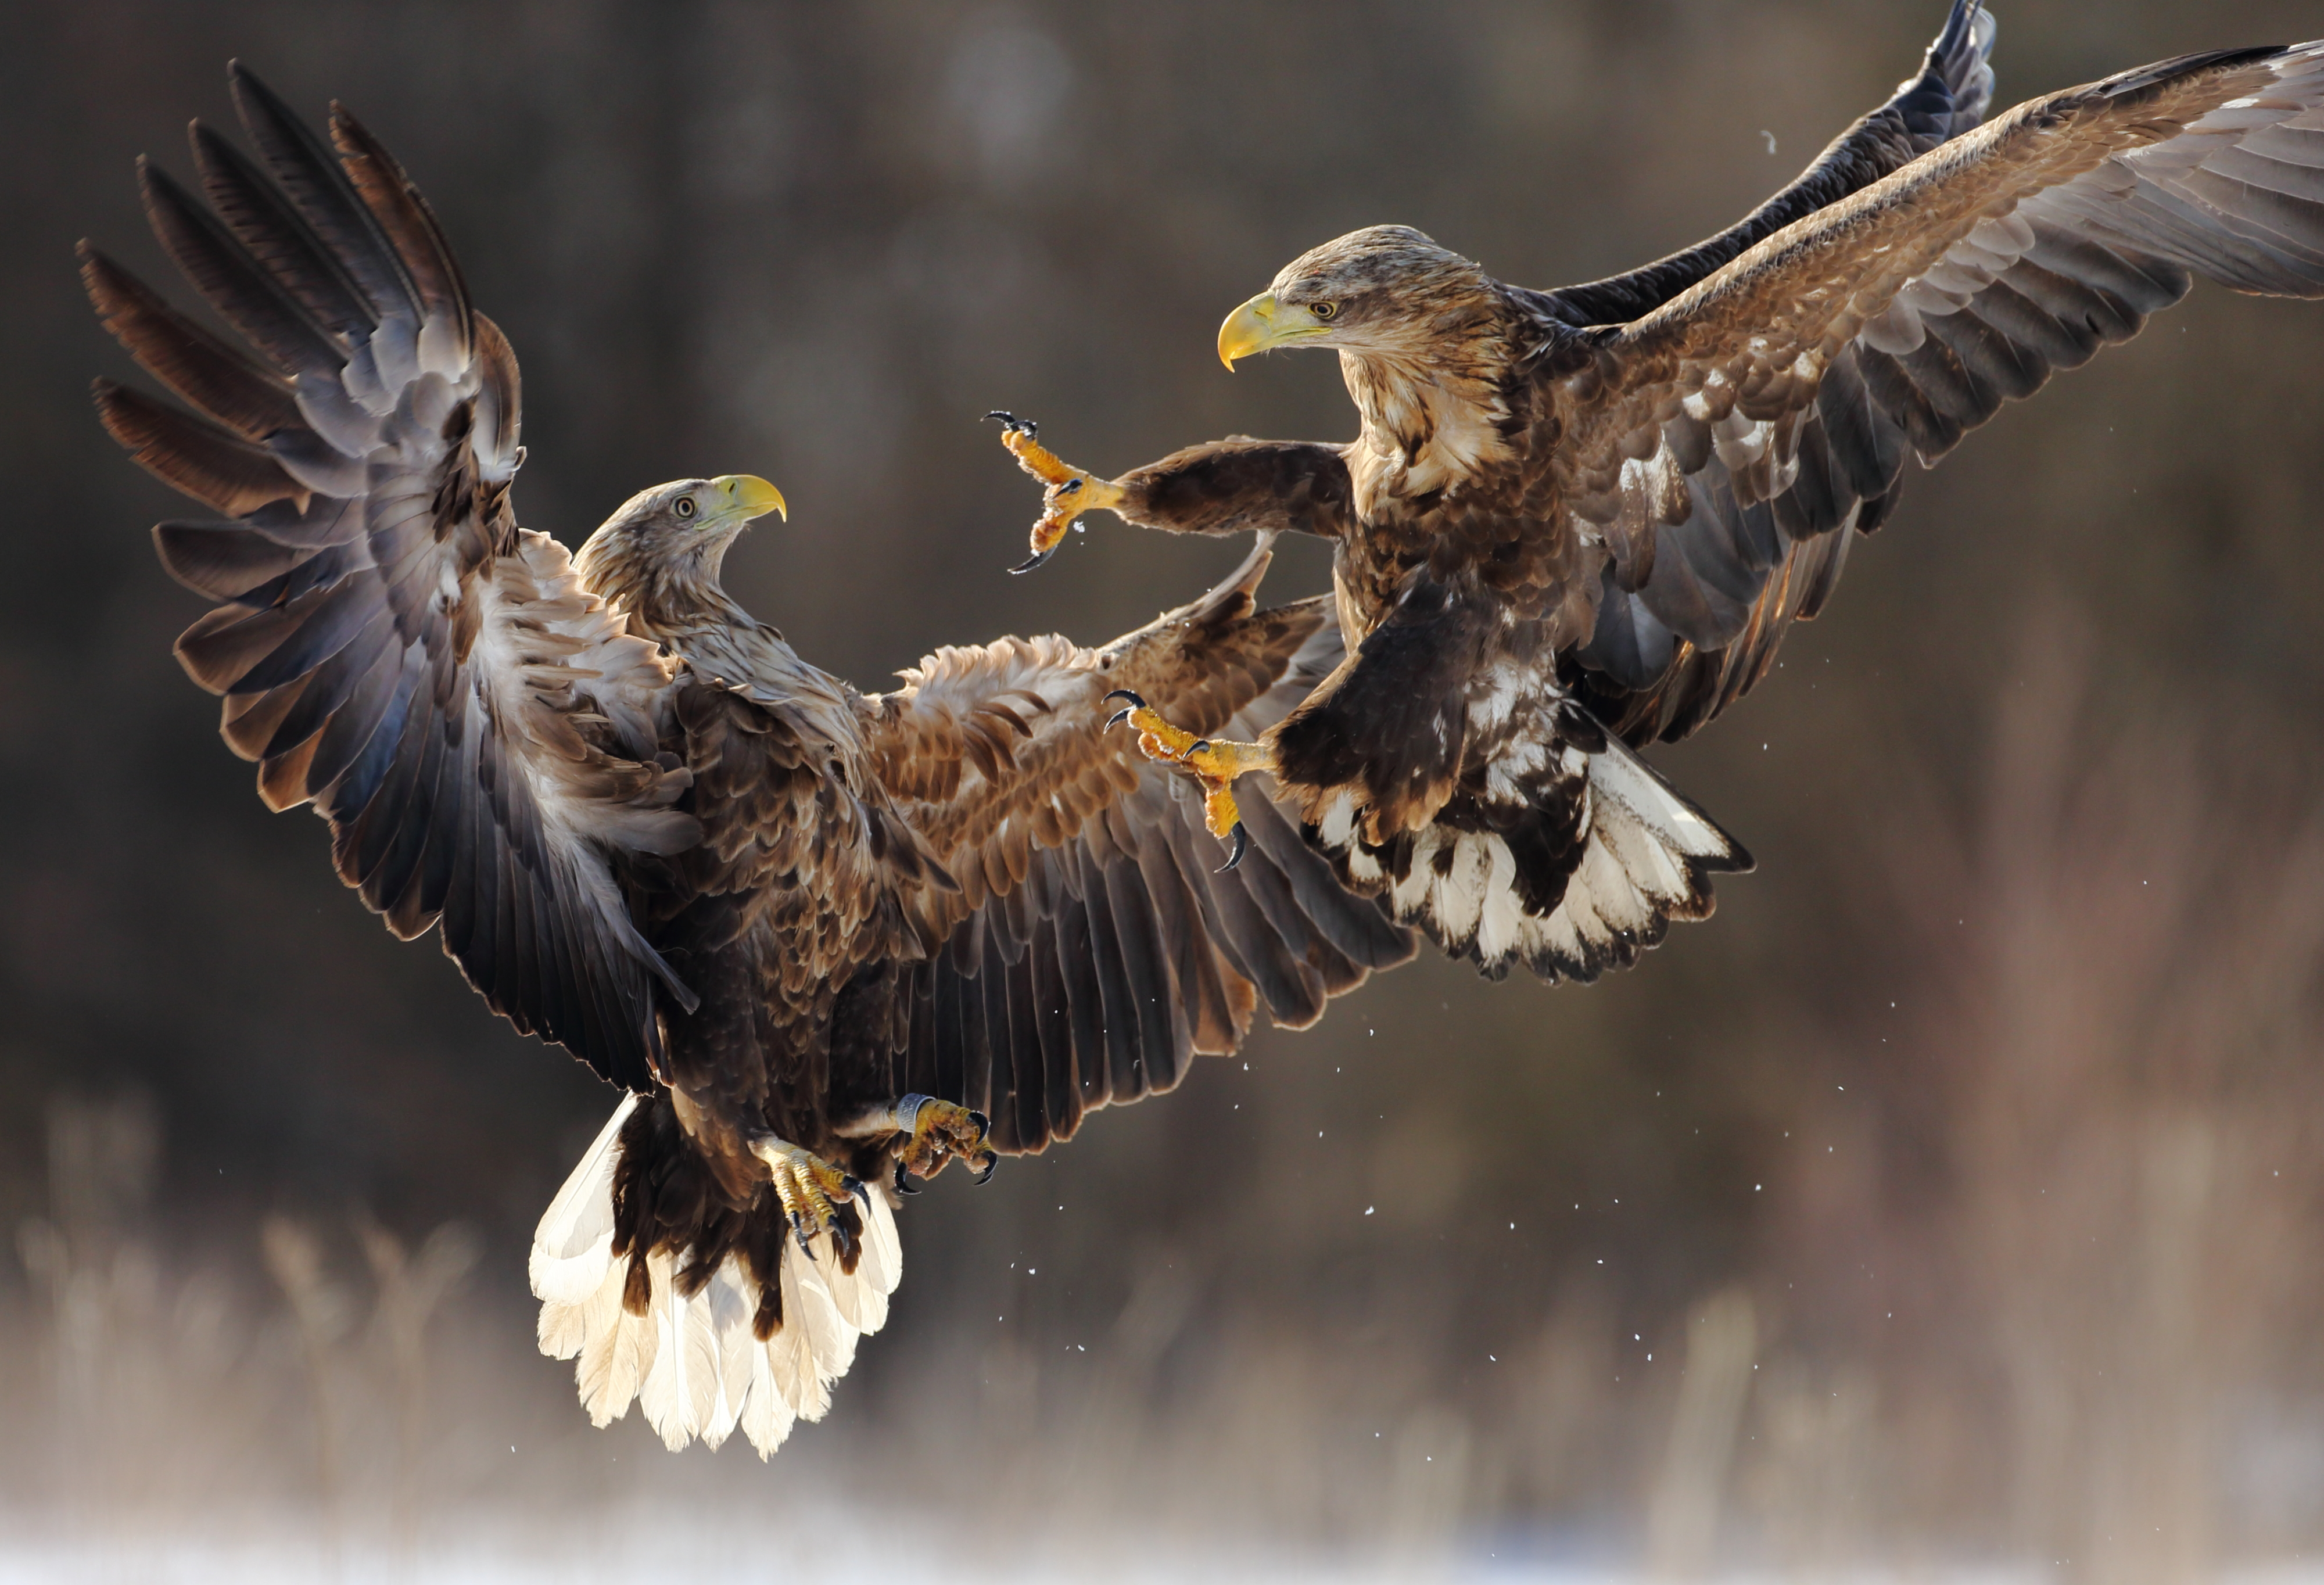 Two white tailed eagles fighting